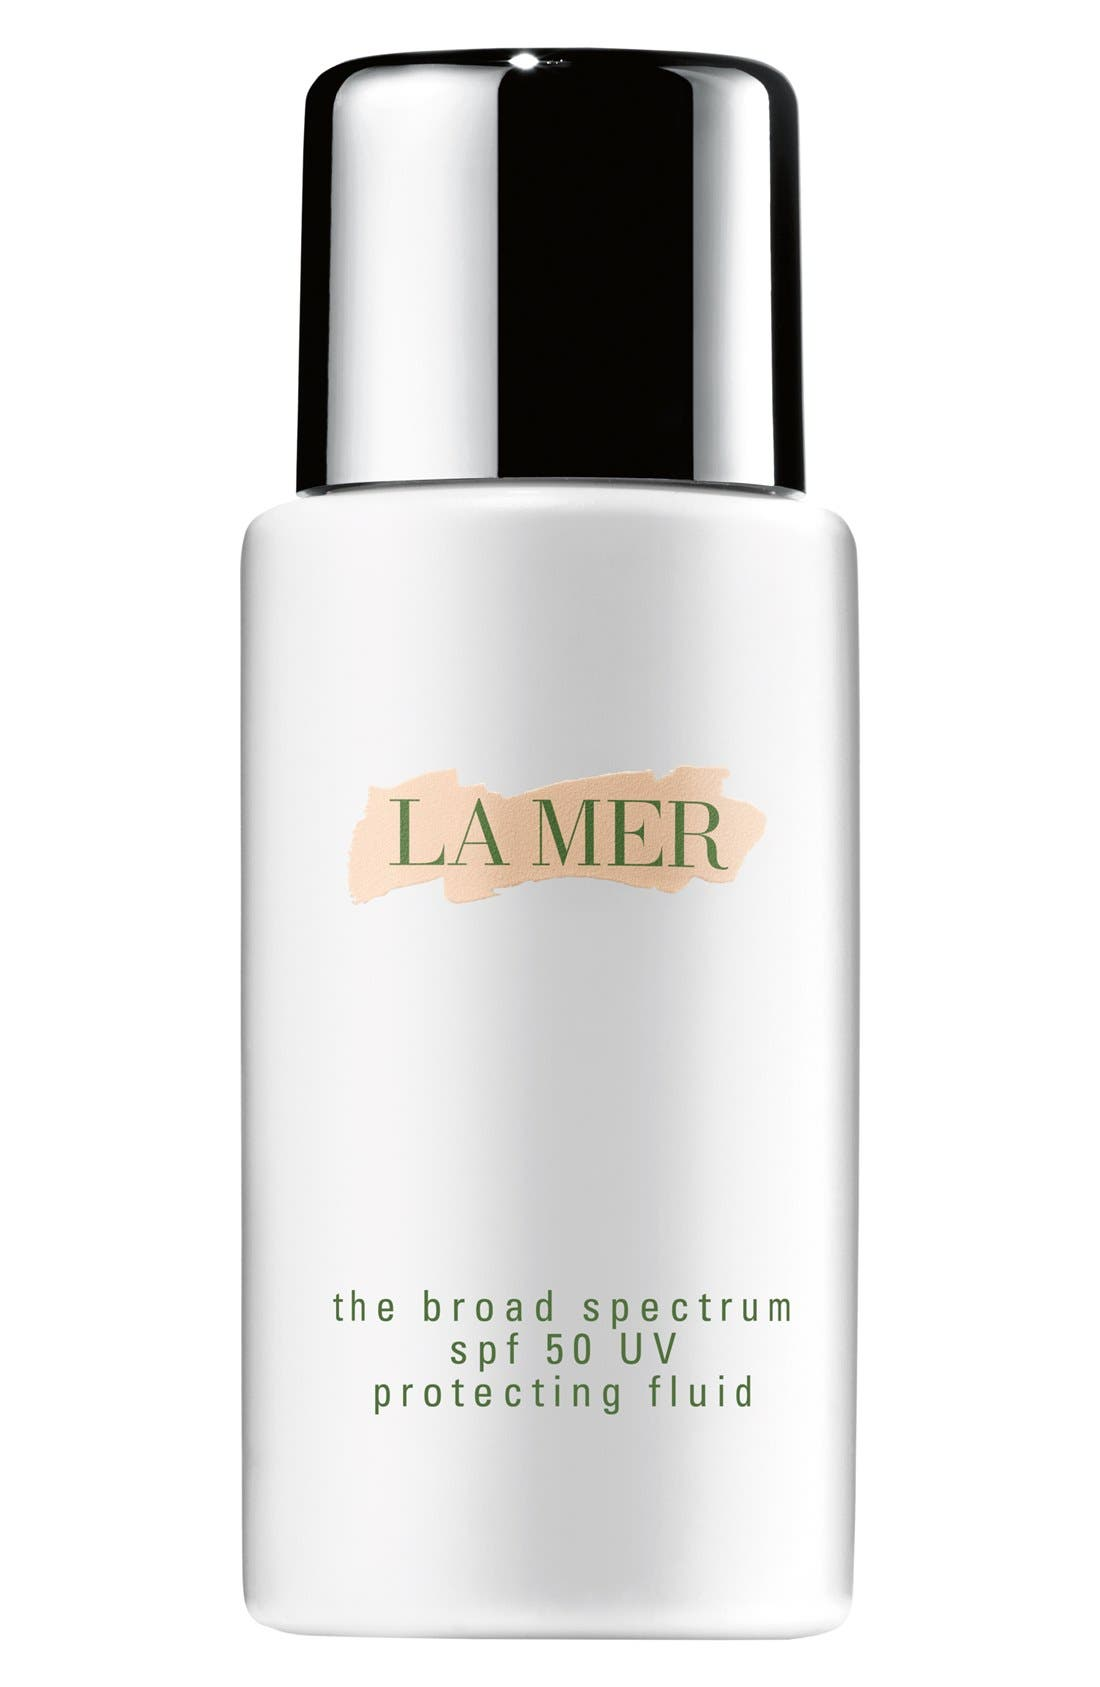 La Mer 'The Broad Spectrum' SPF 50 Daily UV Protecting Fluid